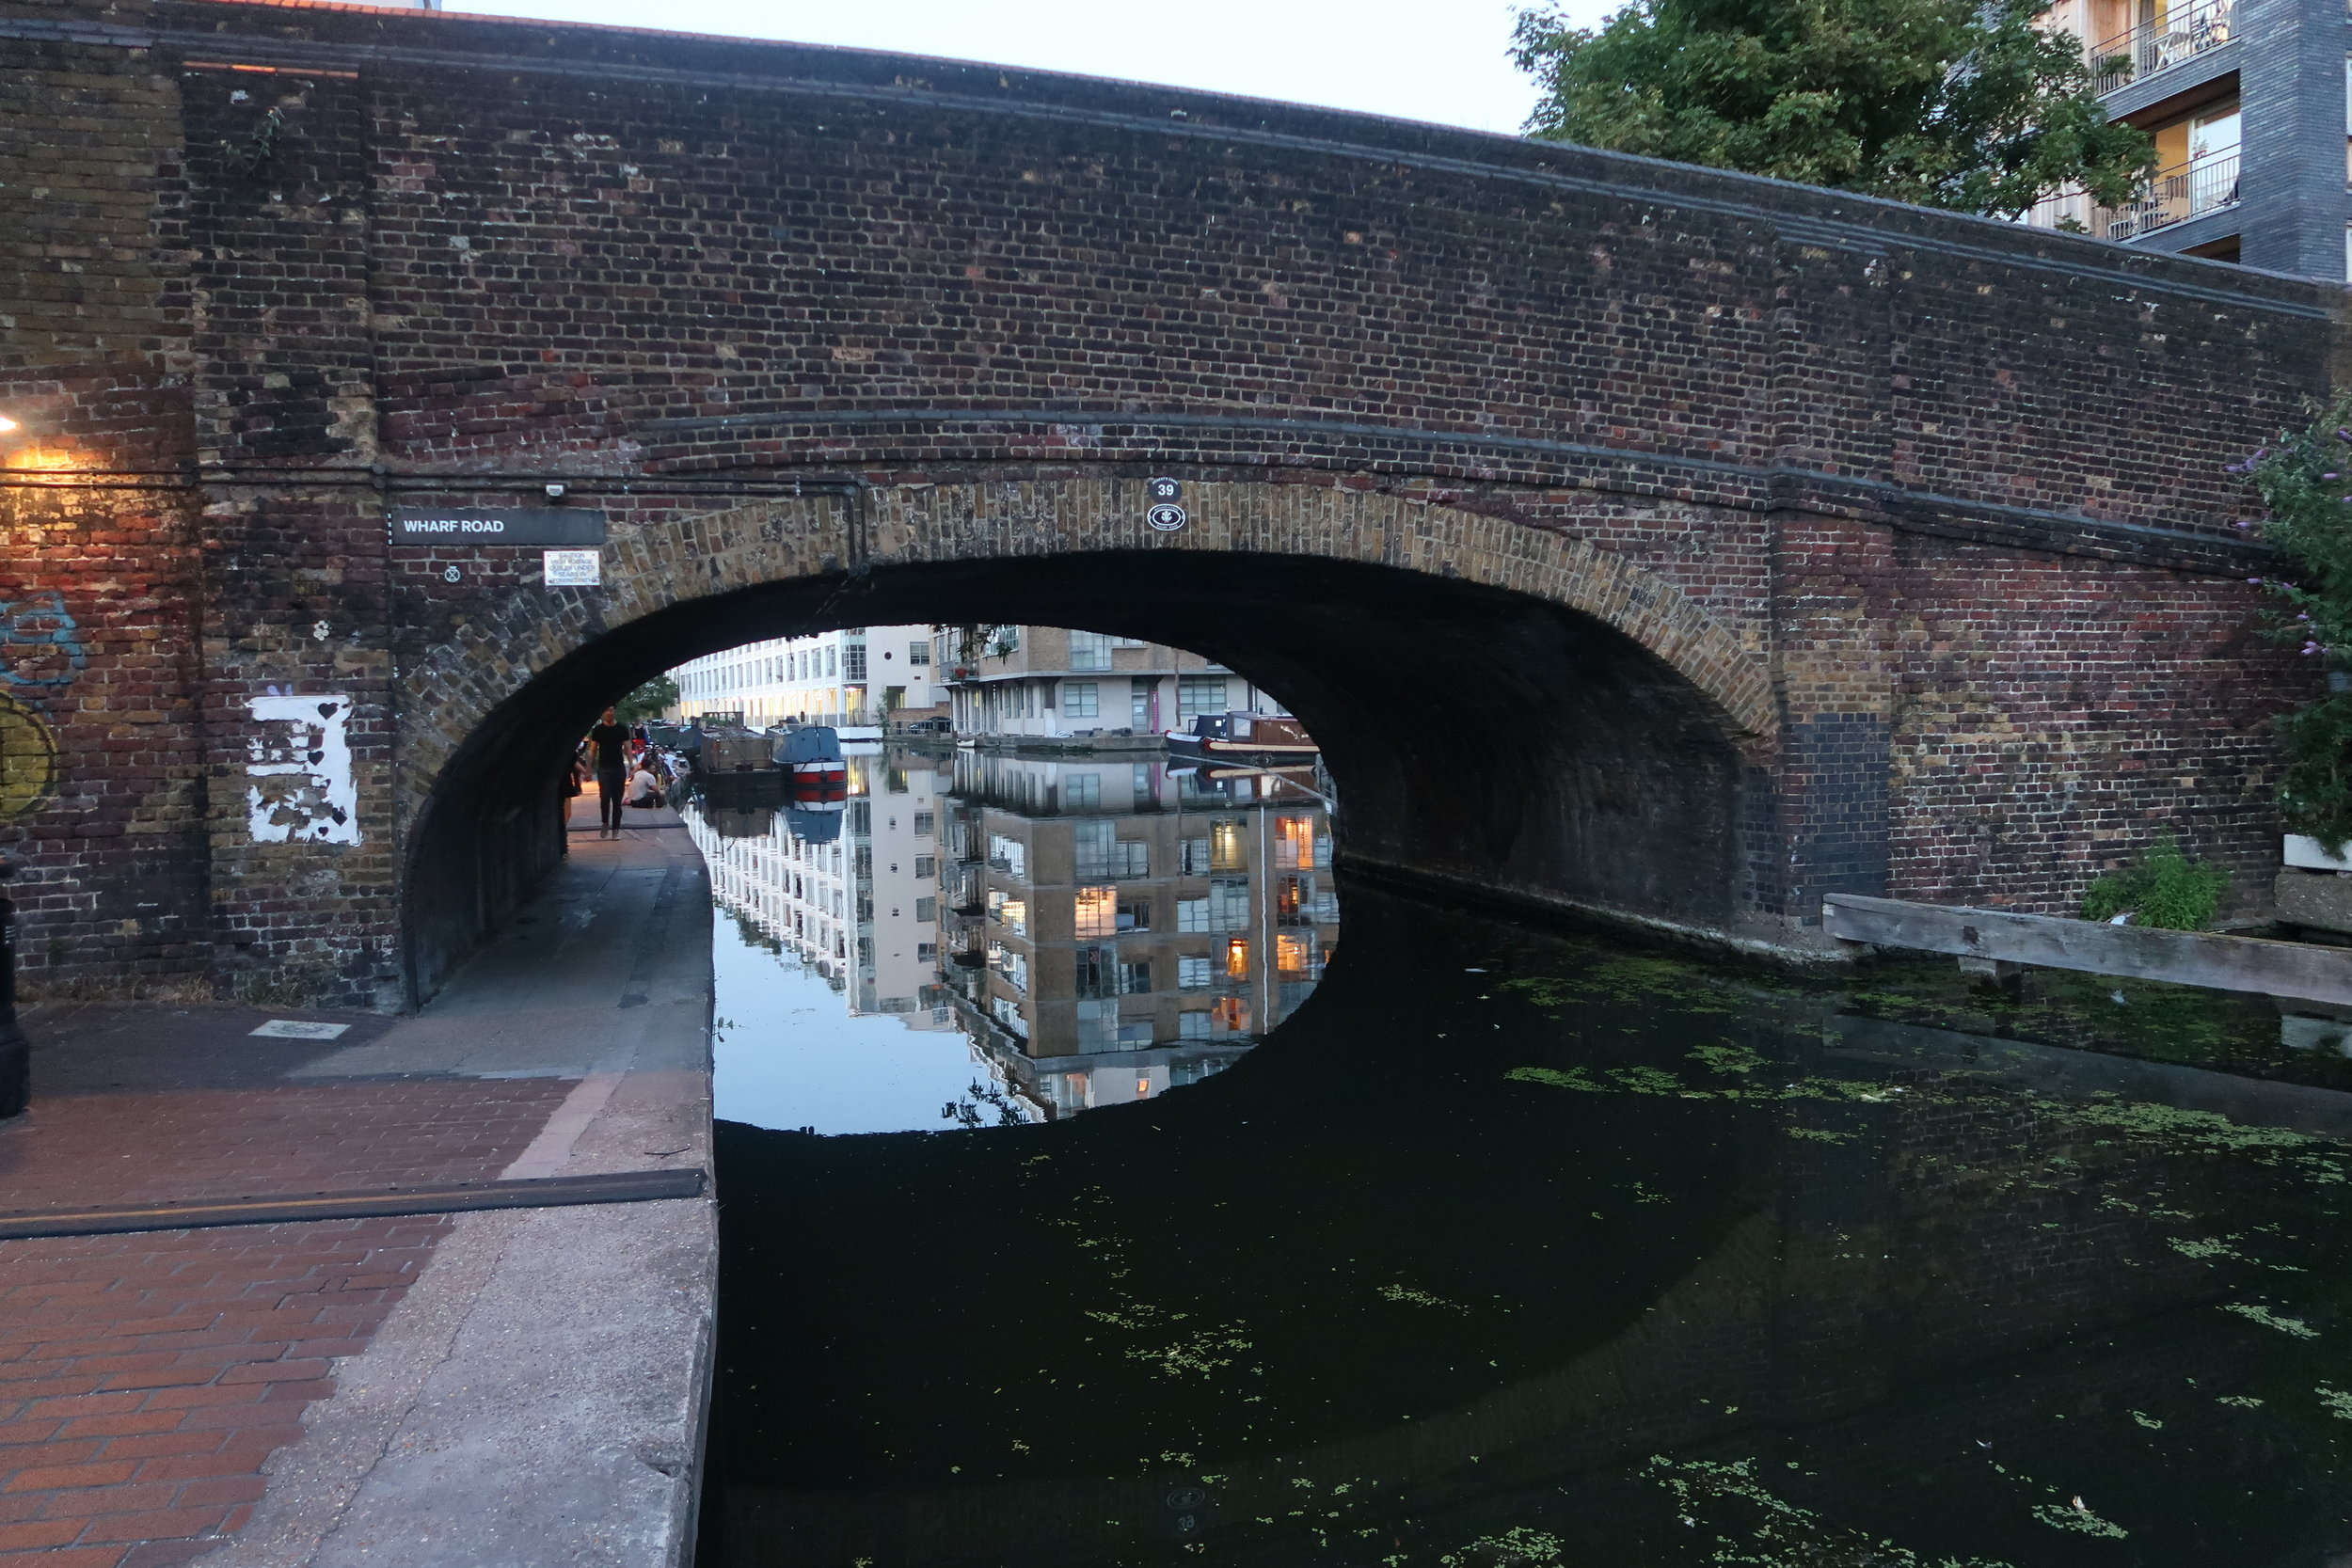 Most days I go for a walk or a run along Regent's Canal in London. It is one of my favourite places in the world and if I don't make time to exercise and get outside I am not myself.